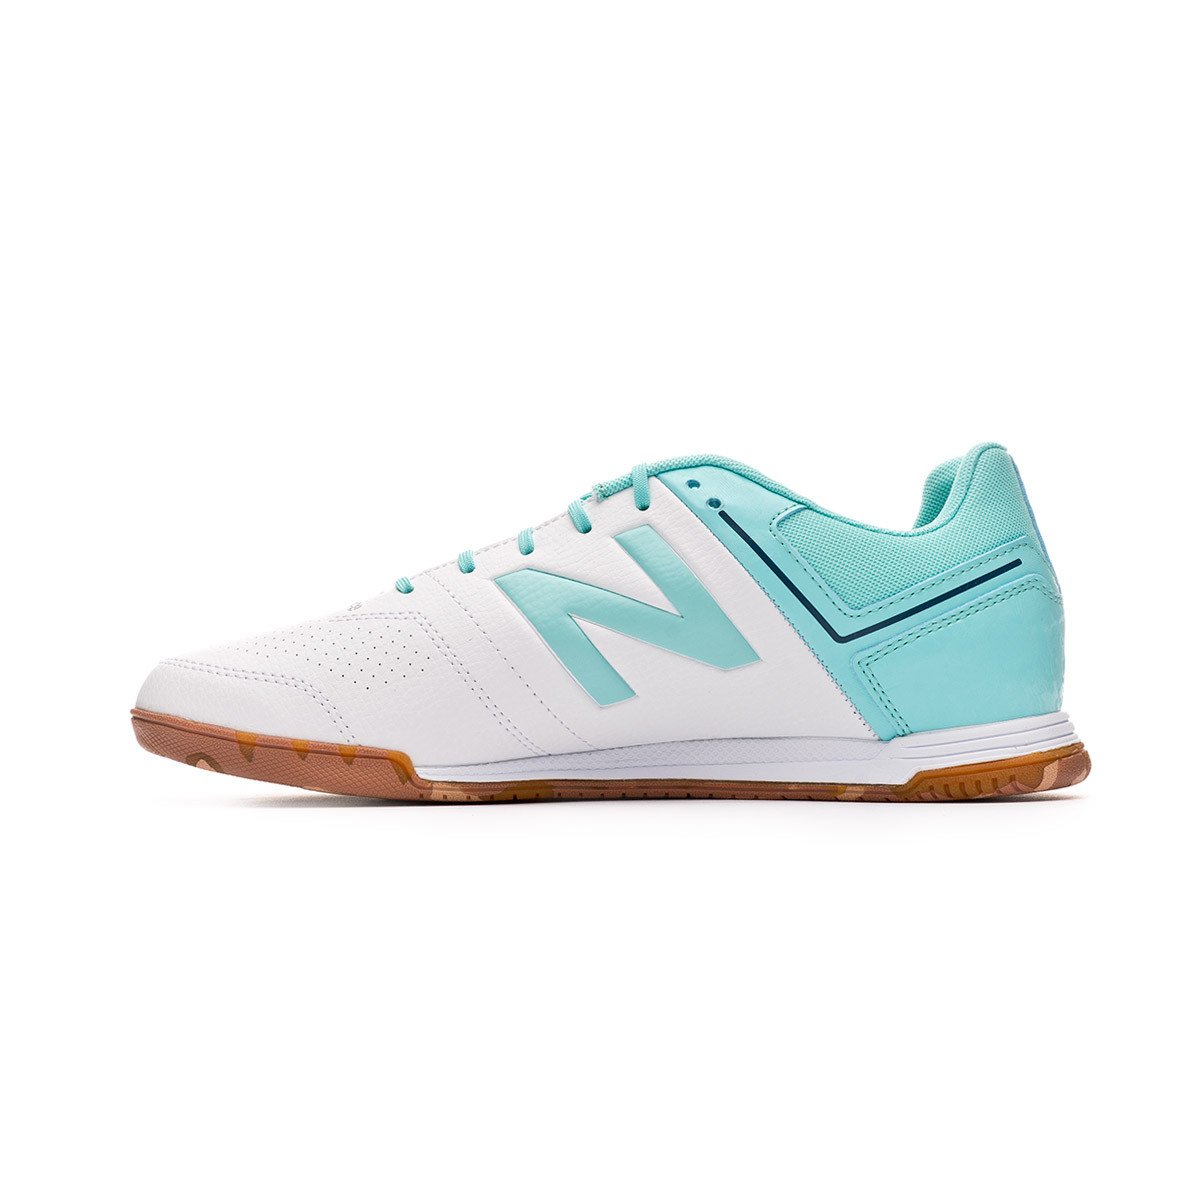 7381a575d Futsal Boot New Balance Audazo Strike 3.0 Futsal White-Light blue - Football  store Fútbol Emotion